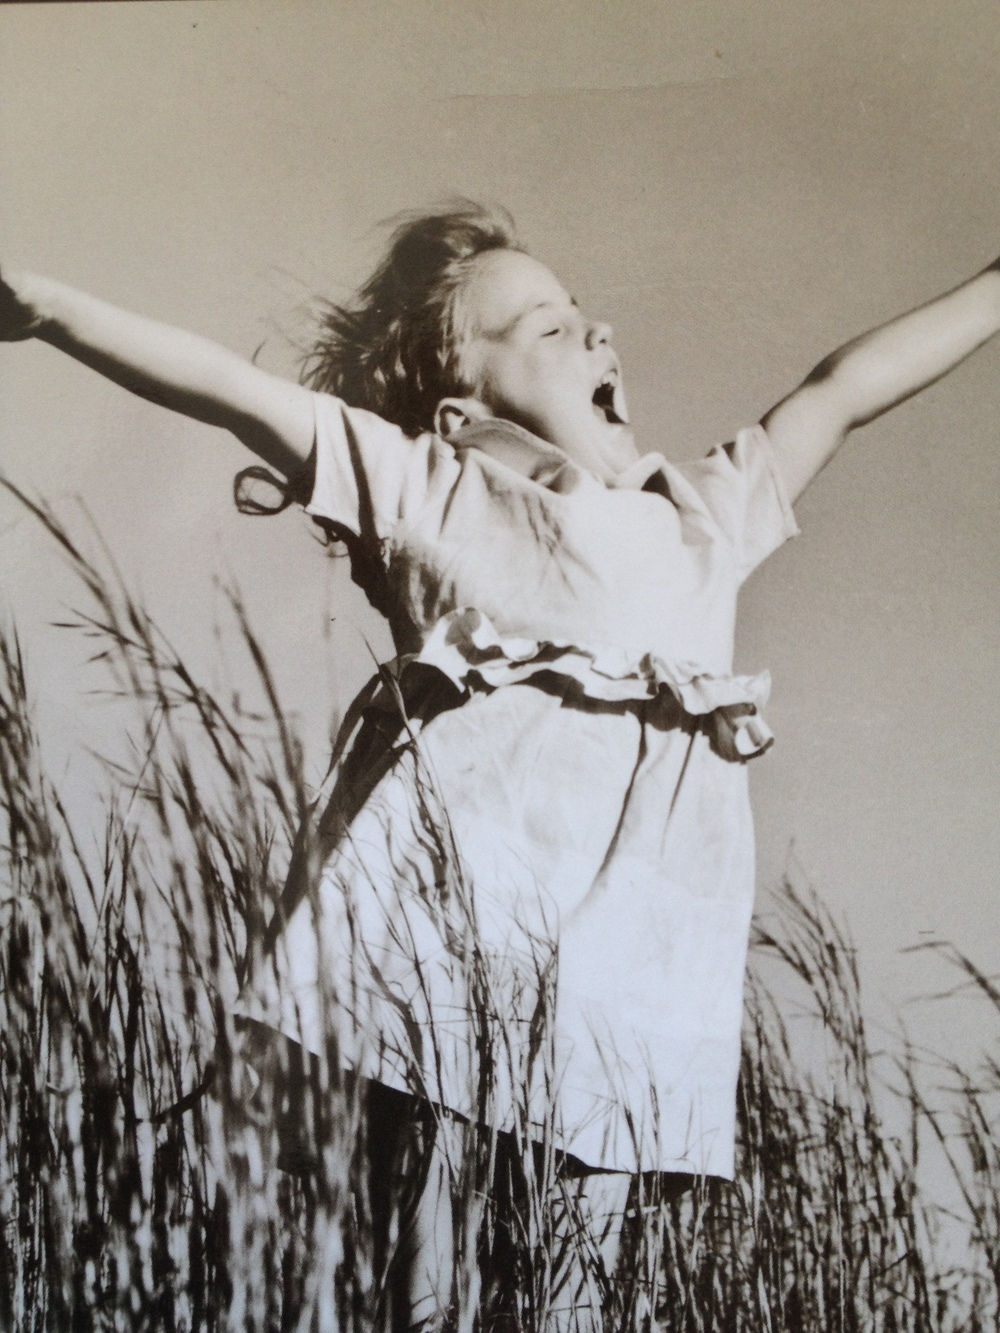 I feel like this is a great depiction of how my joy feels. Yes! Expansive, song-filled joy!